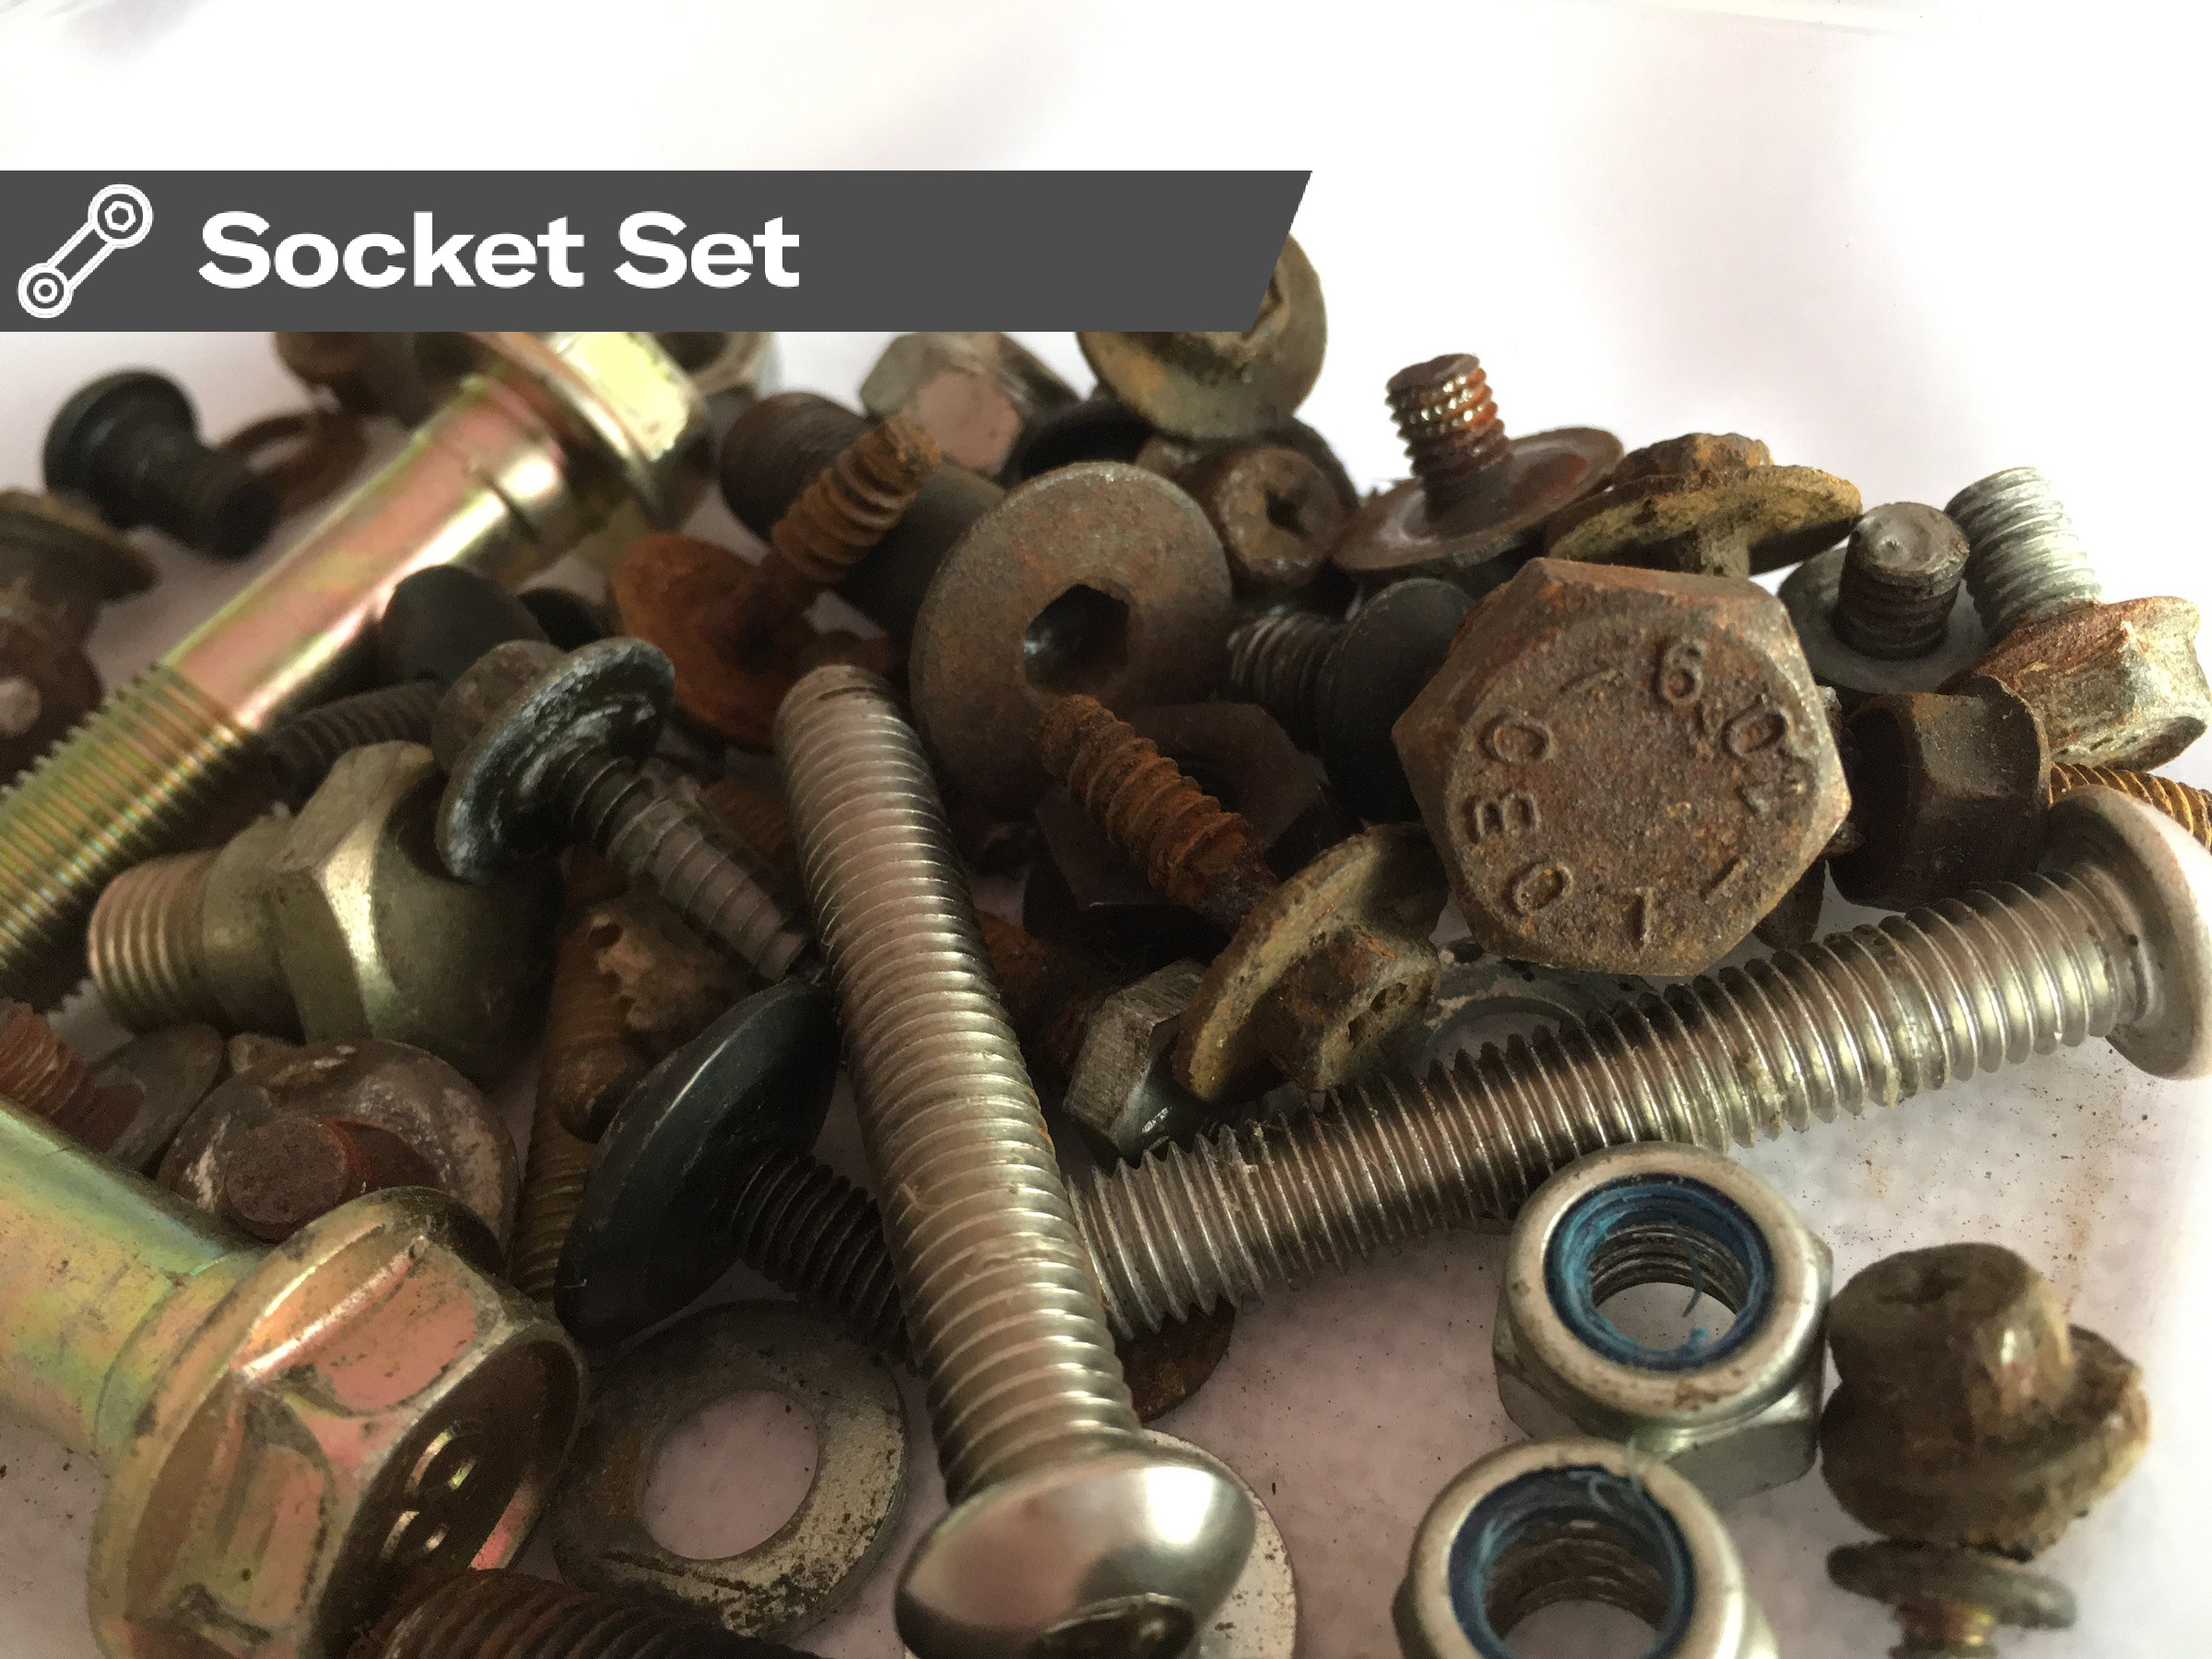 Socket Set: Rusty nuts? Here's how to free 'em